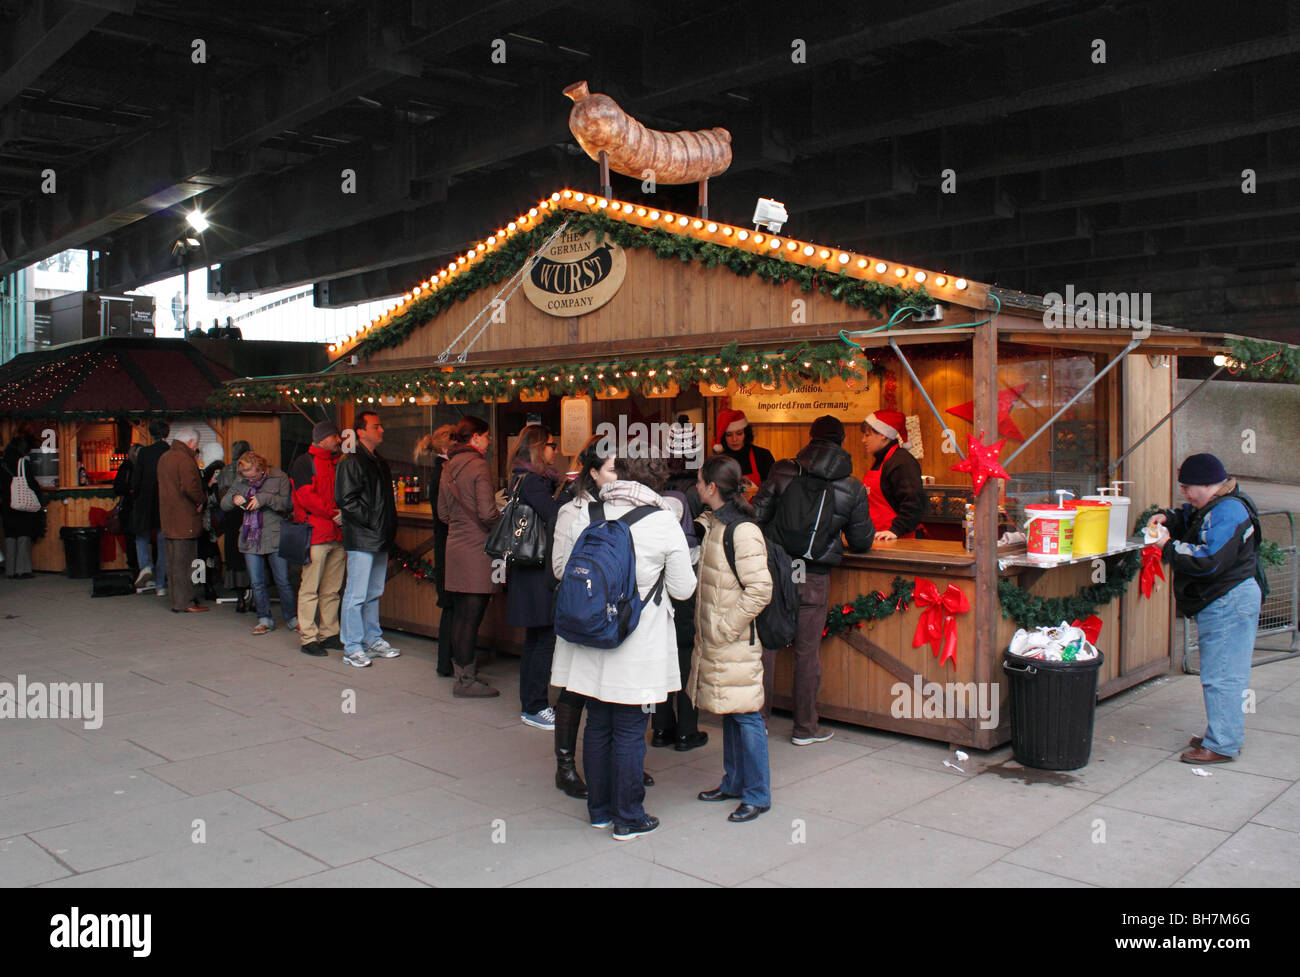 South Bank Food Market London